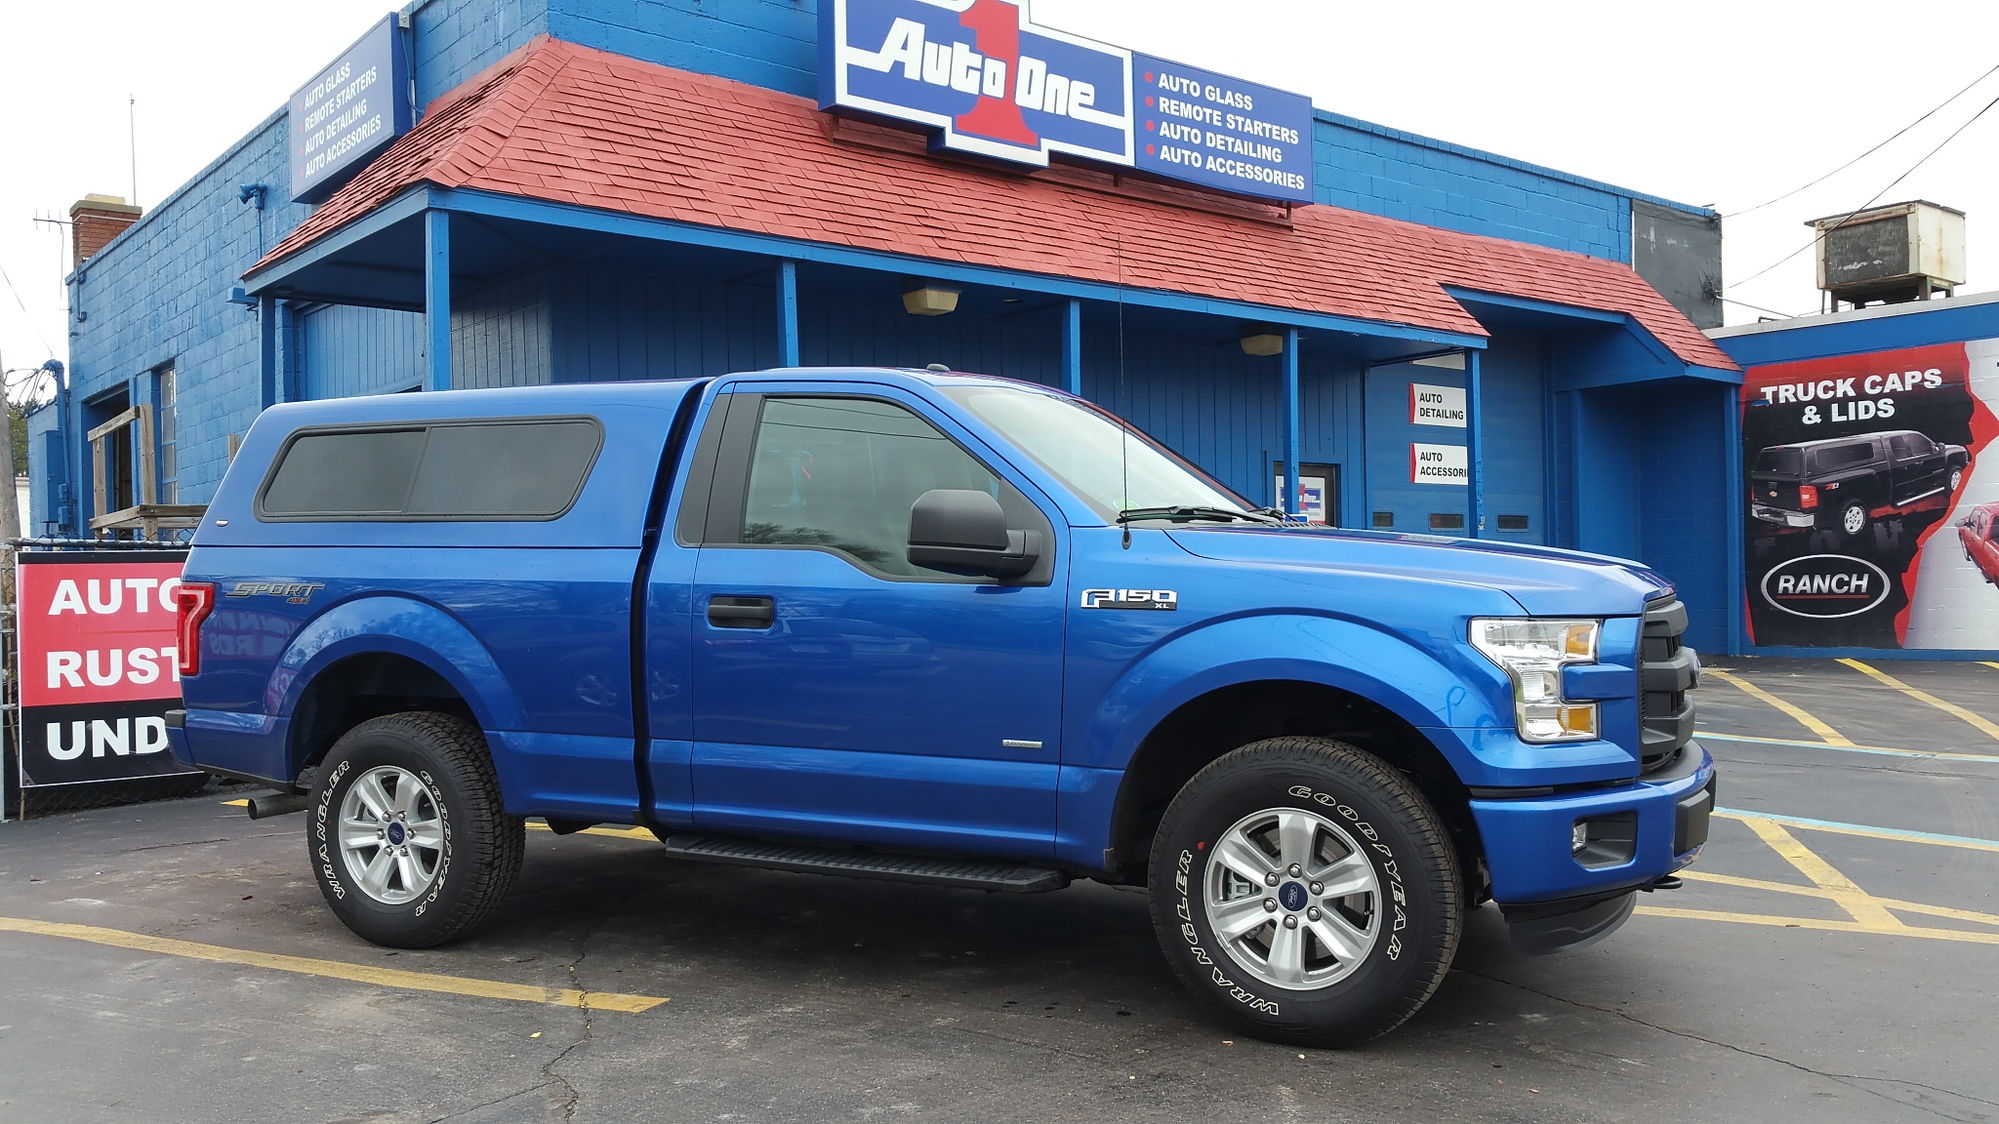 2015 Ford F 150 Regular Cab >> Official Regular Cab Thread - Page 10 - Ford F150 Forum ...